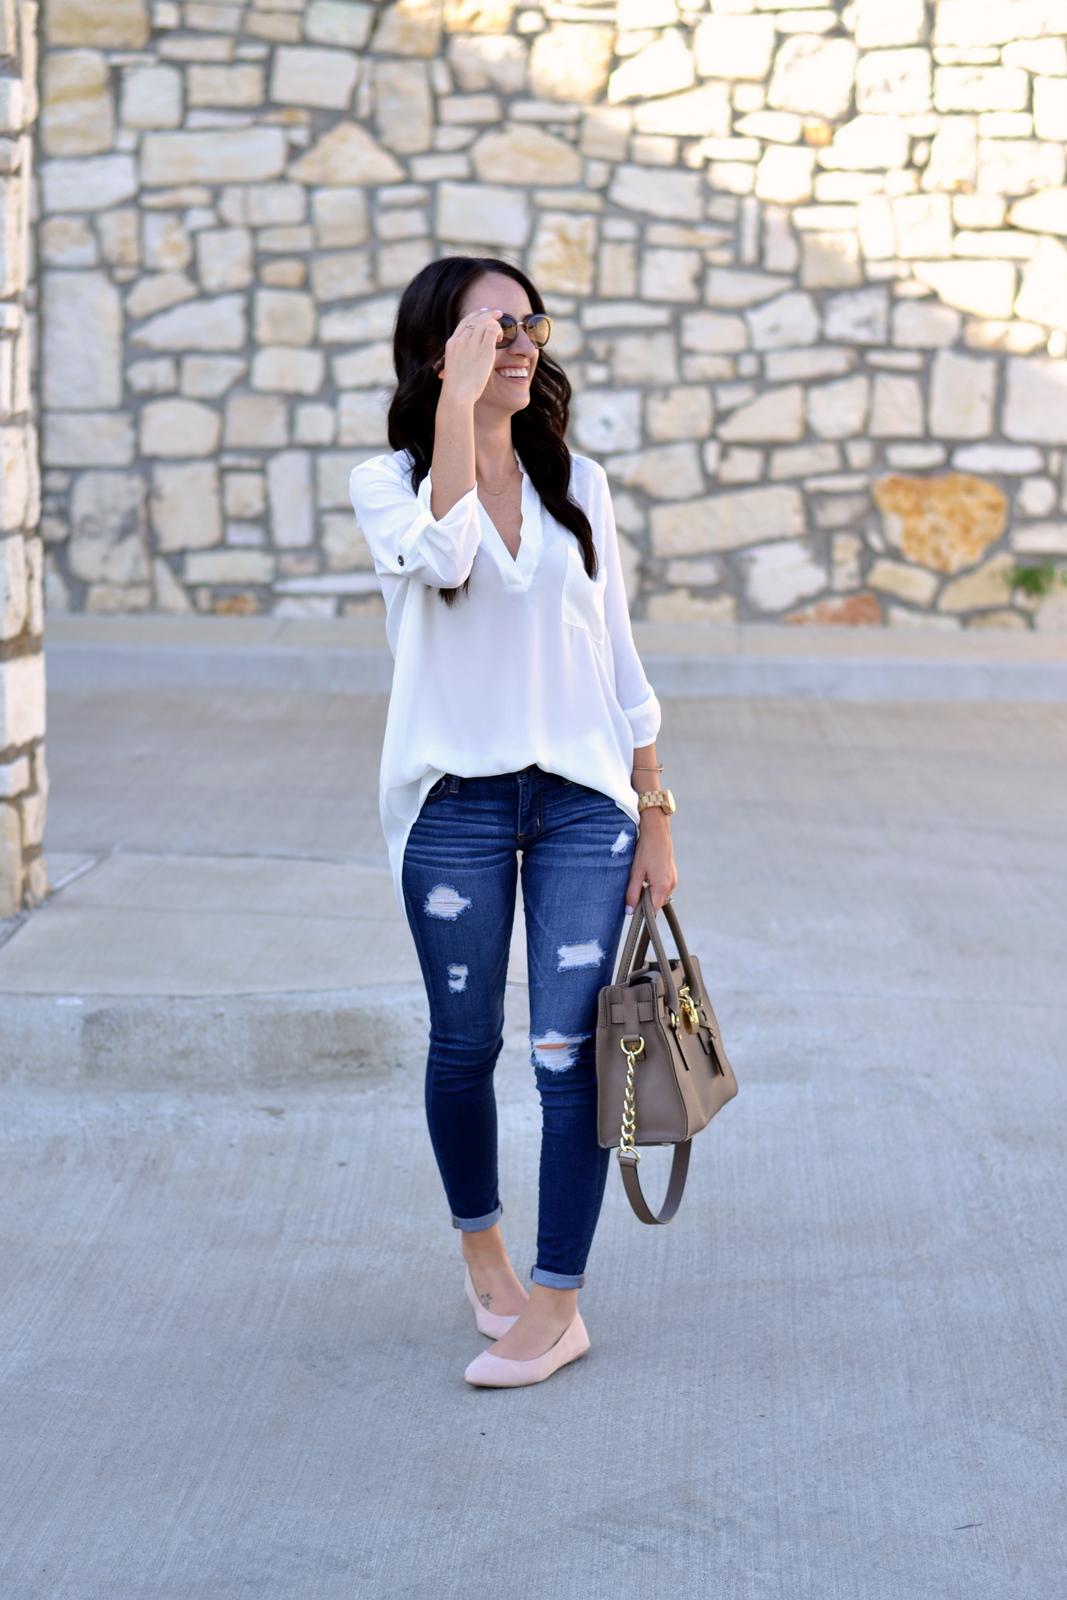 Casual Summer Look with nude flats, distressed denim and white tunic